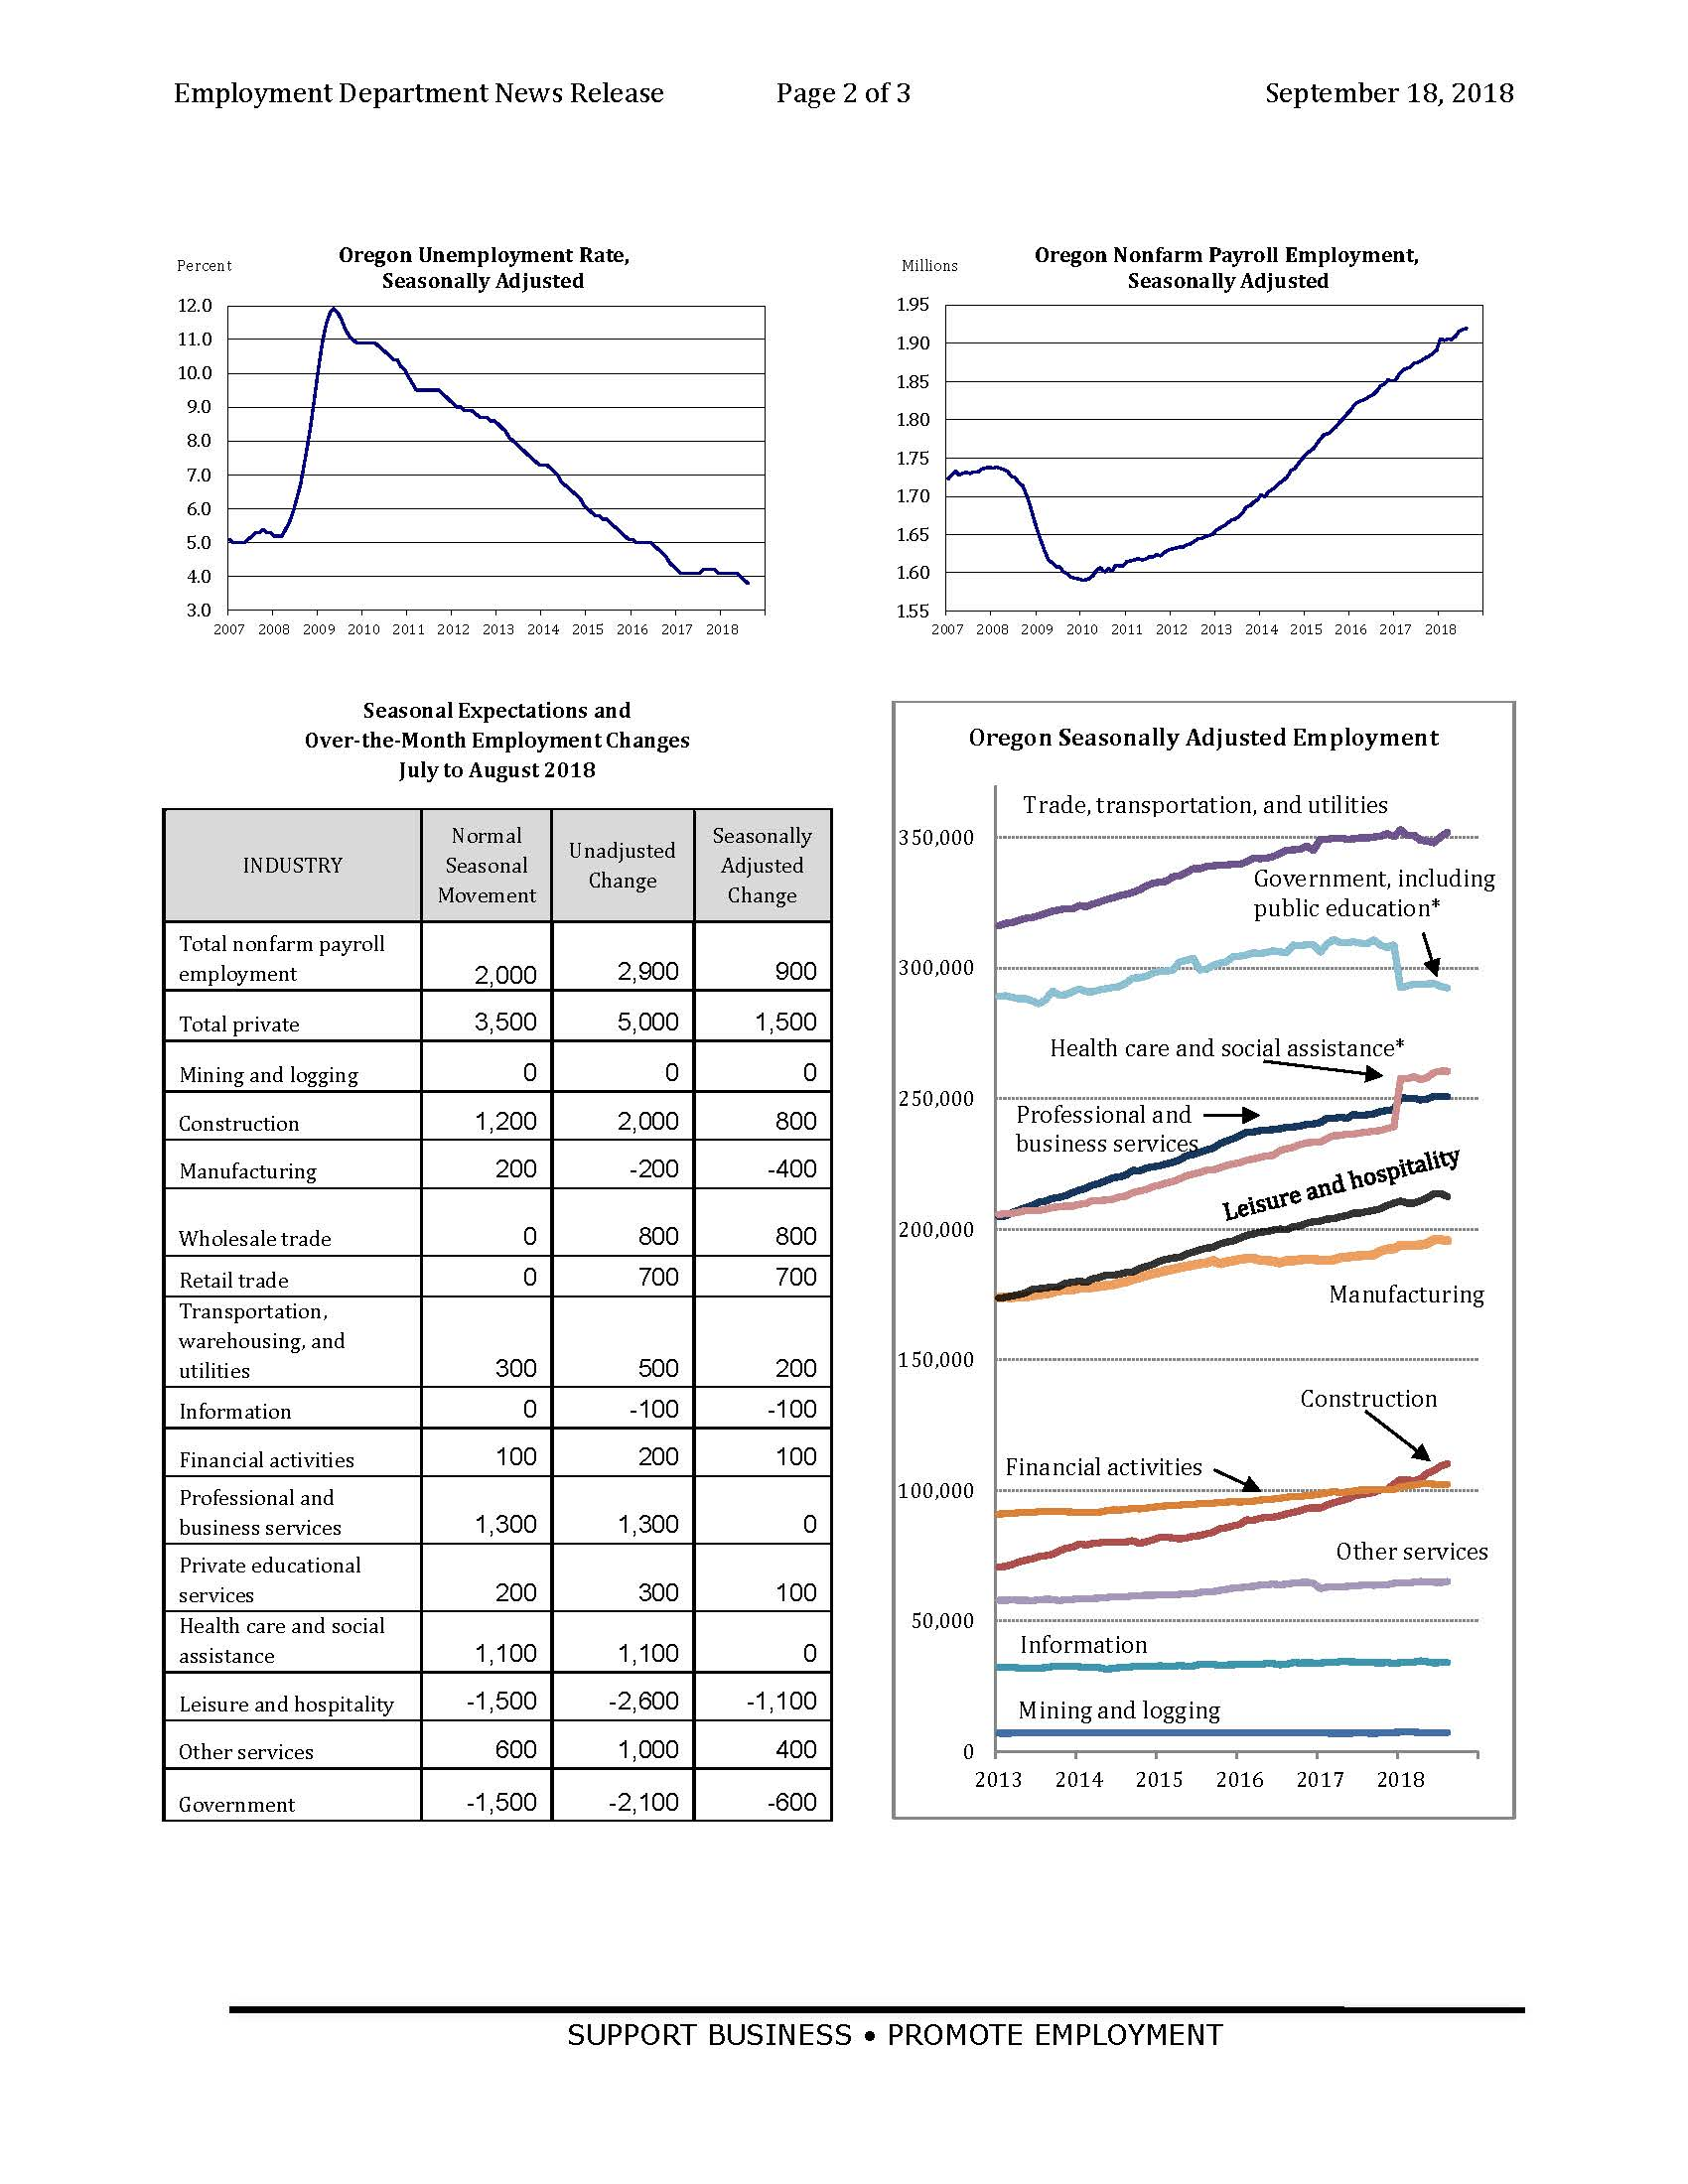 employment_in_Oregon_--_August_2018_--_press_release_Page_2.jpg